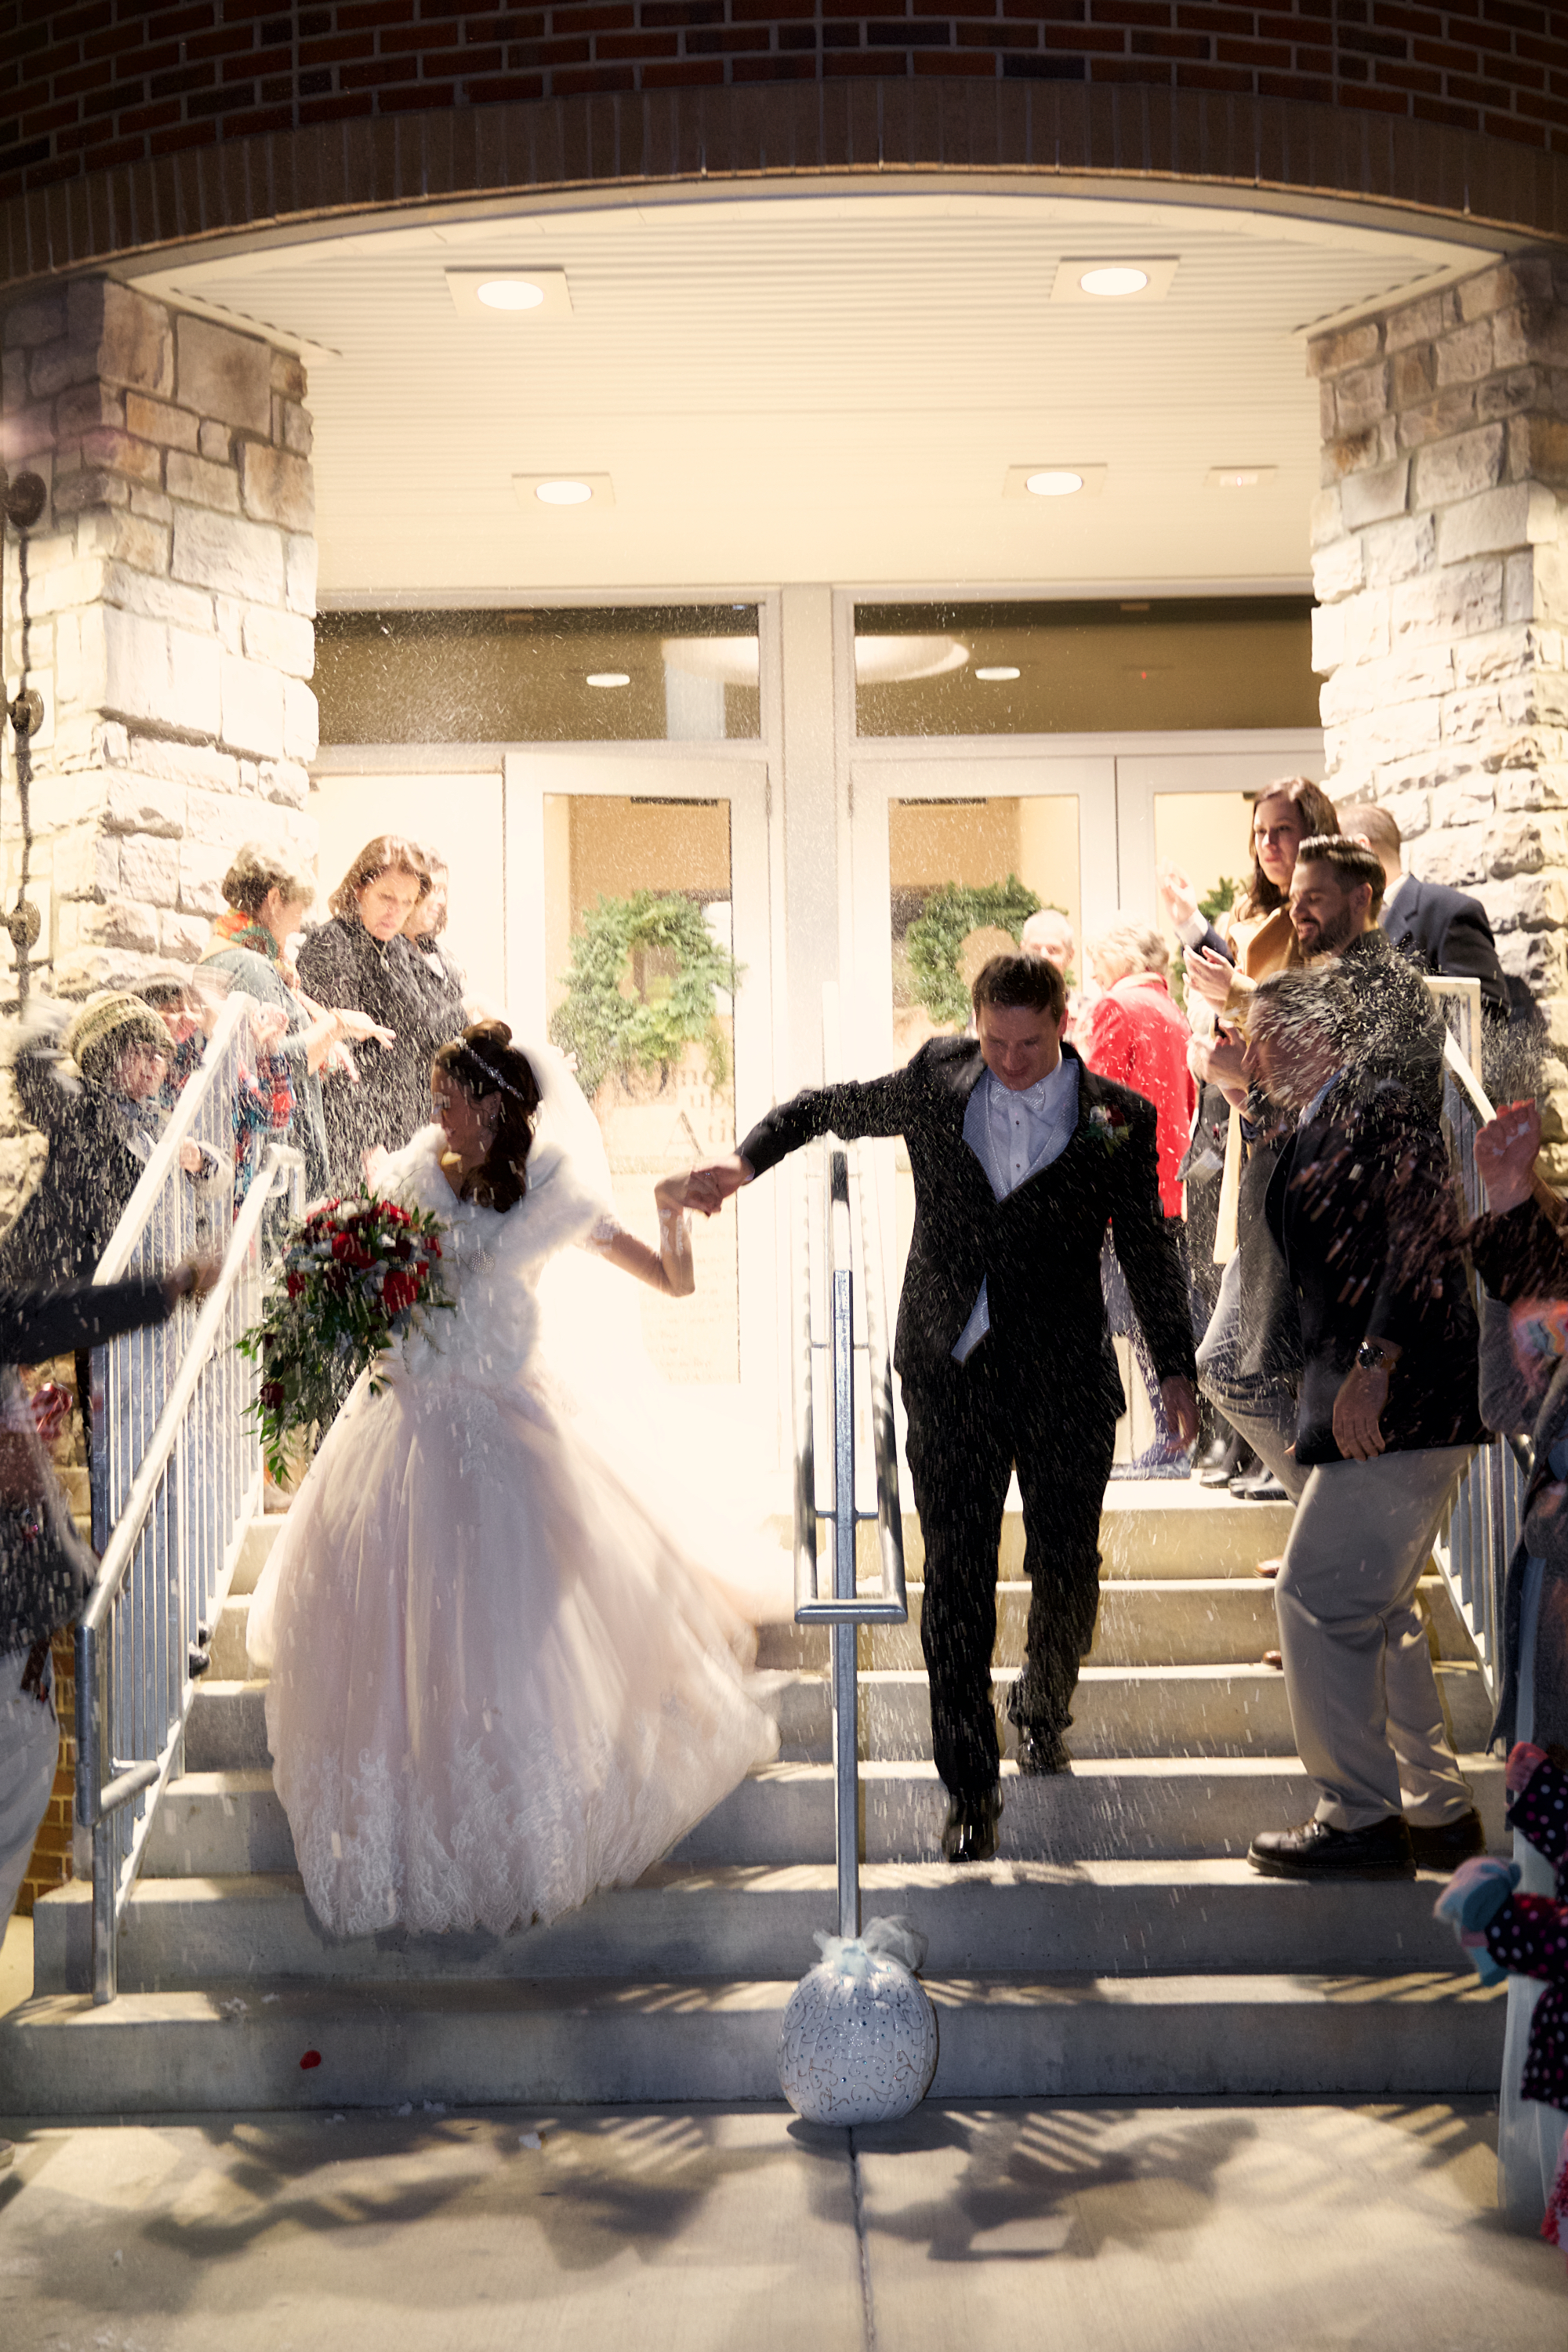 43-bride-and-groom-leaving.jpg